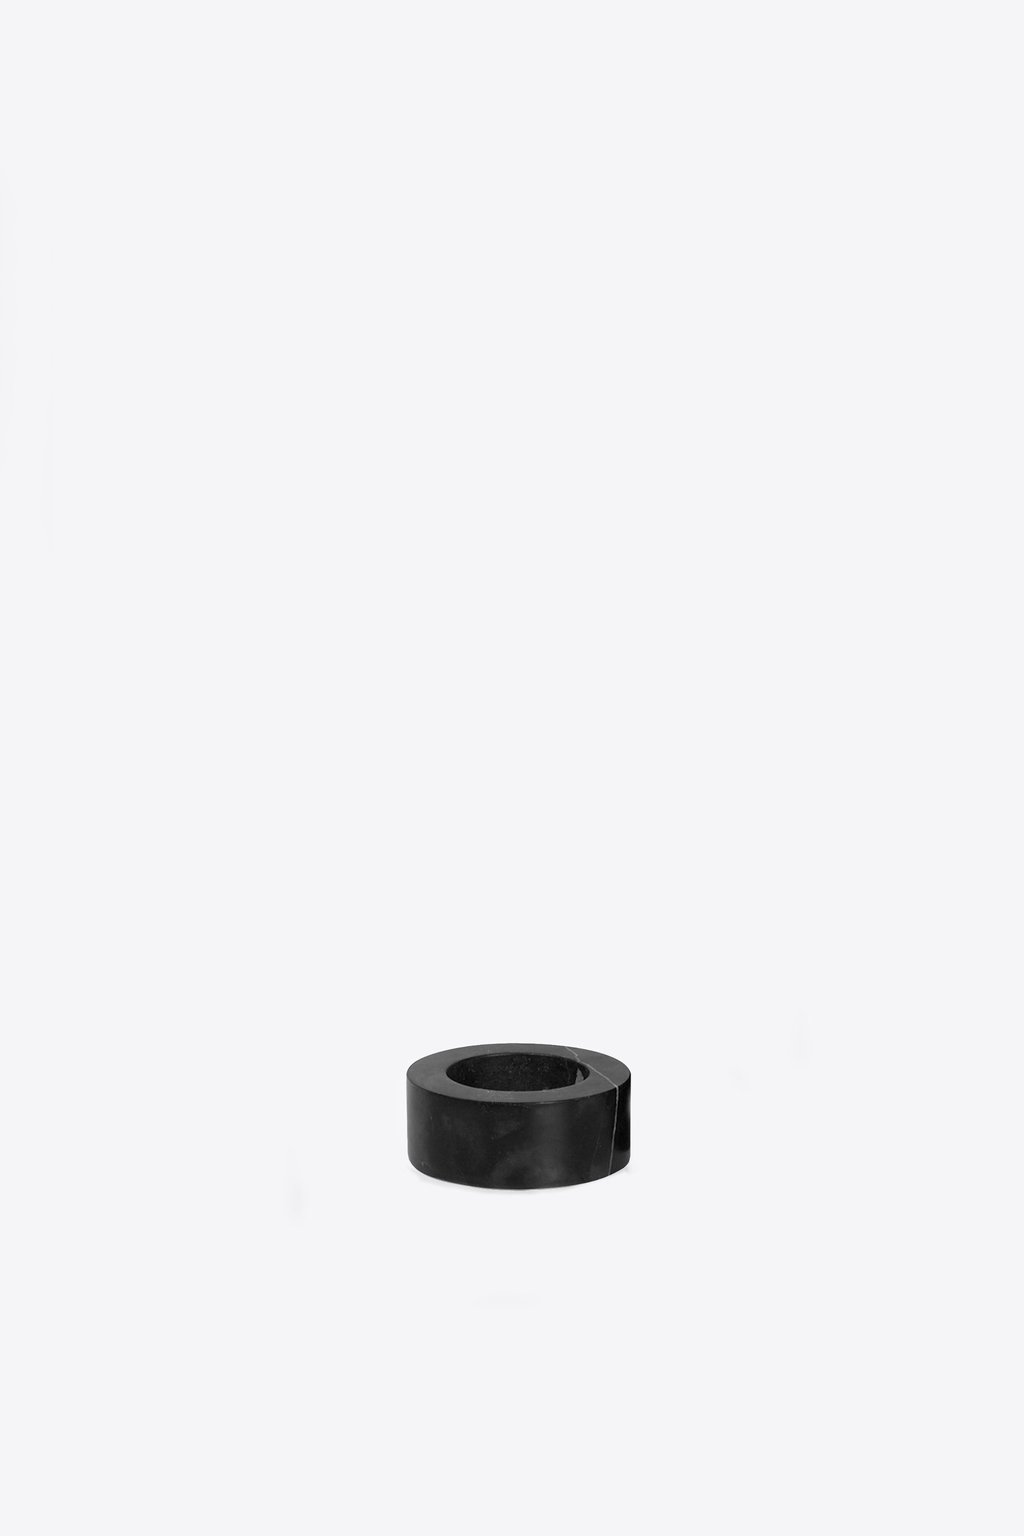 Tealight Candle Holder 1875 Black 2